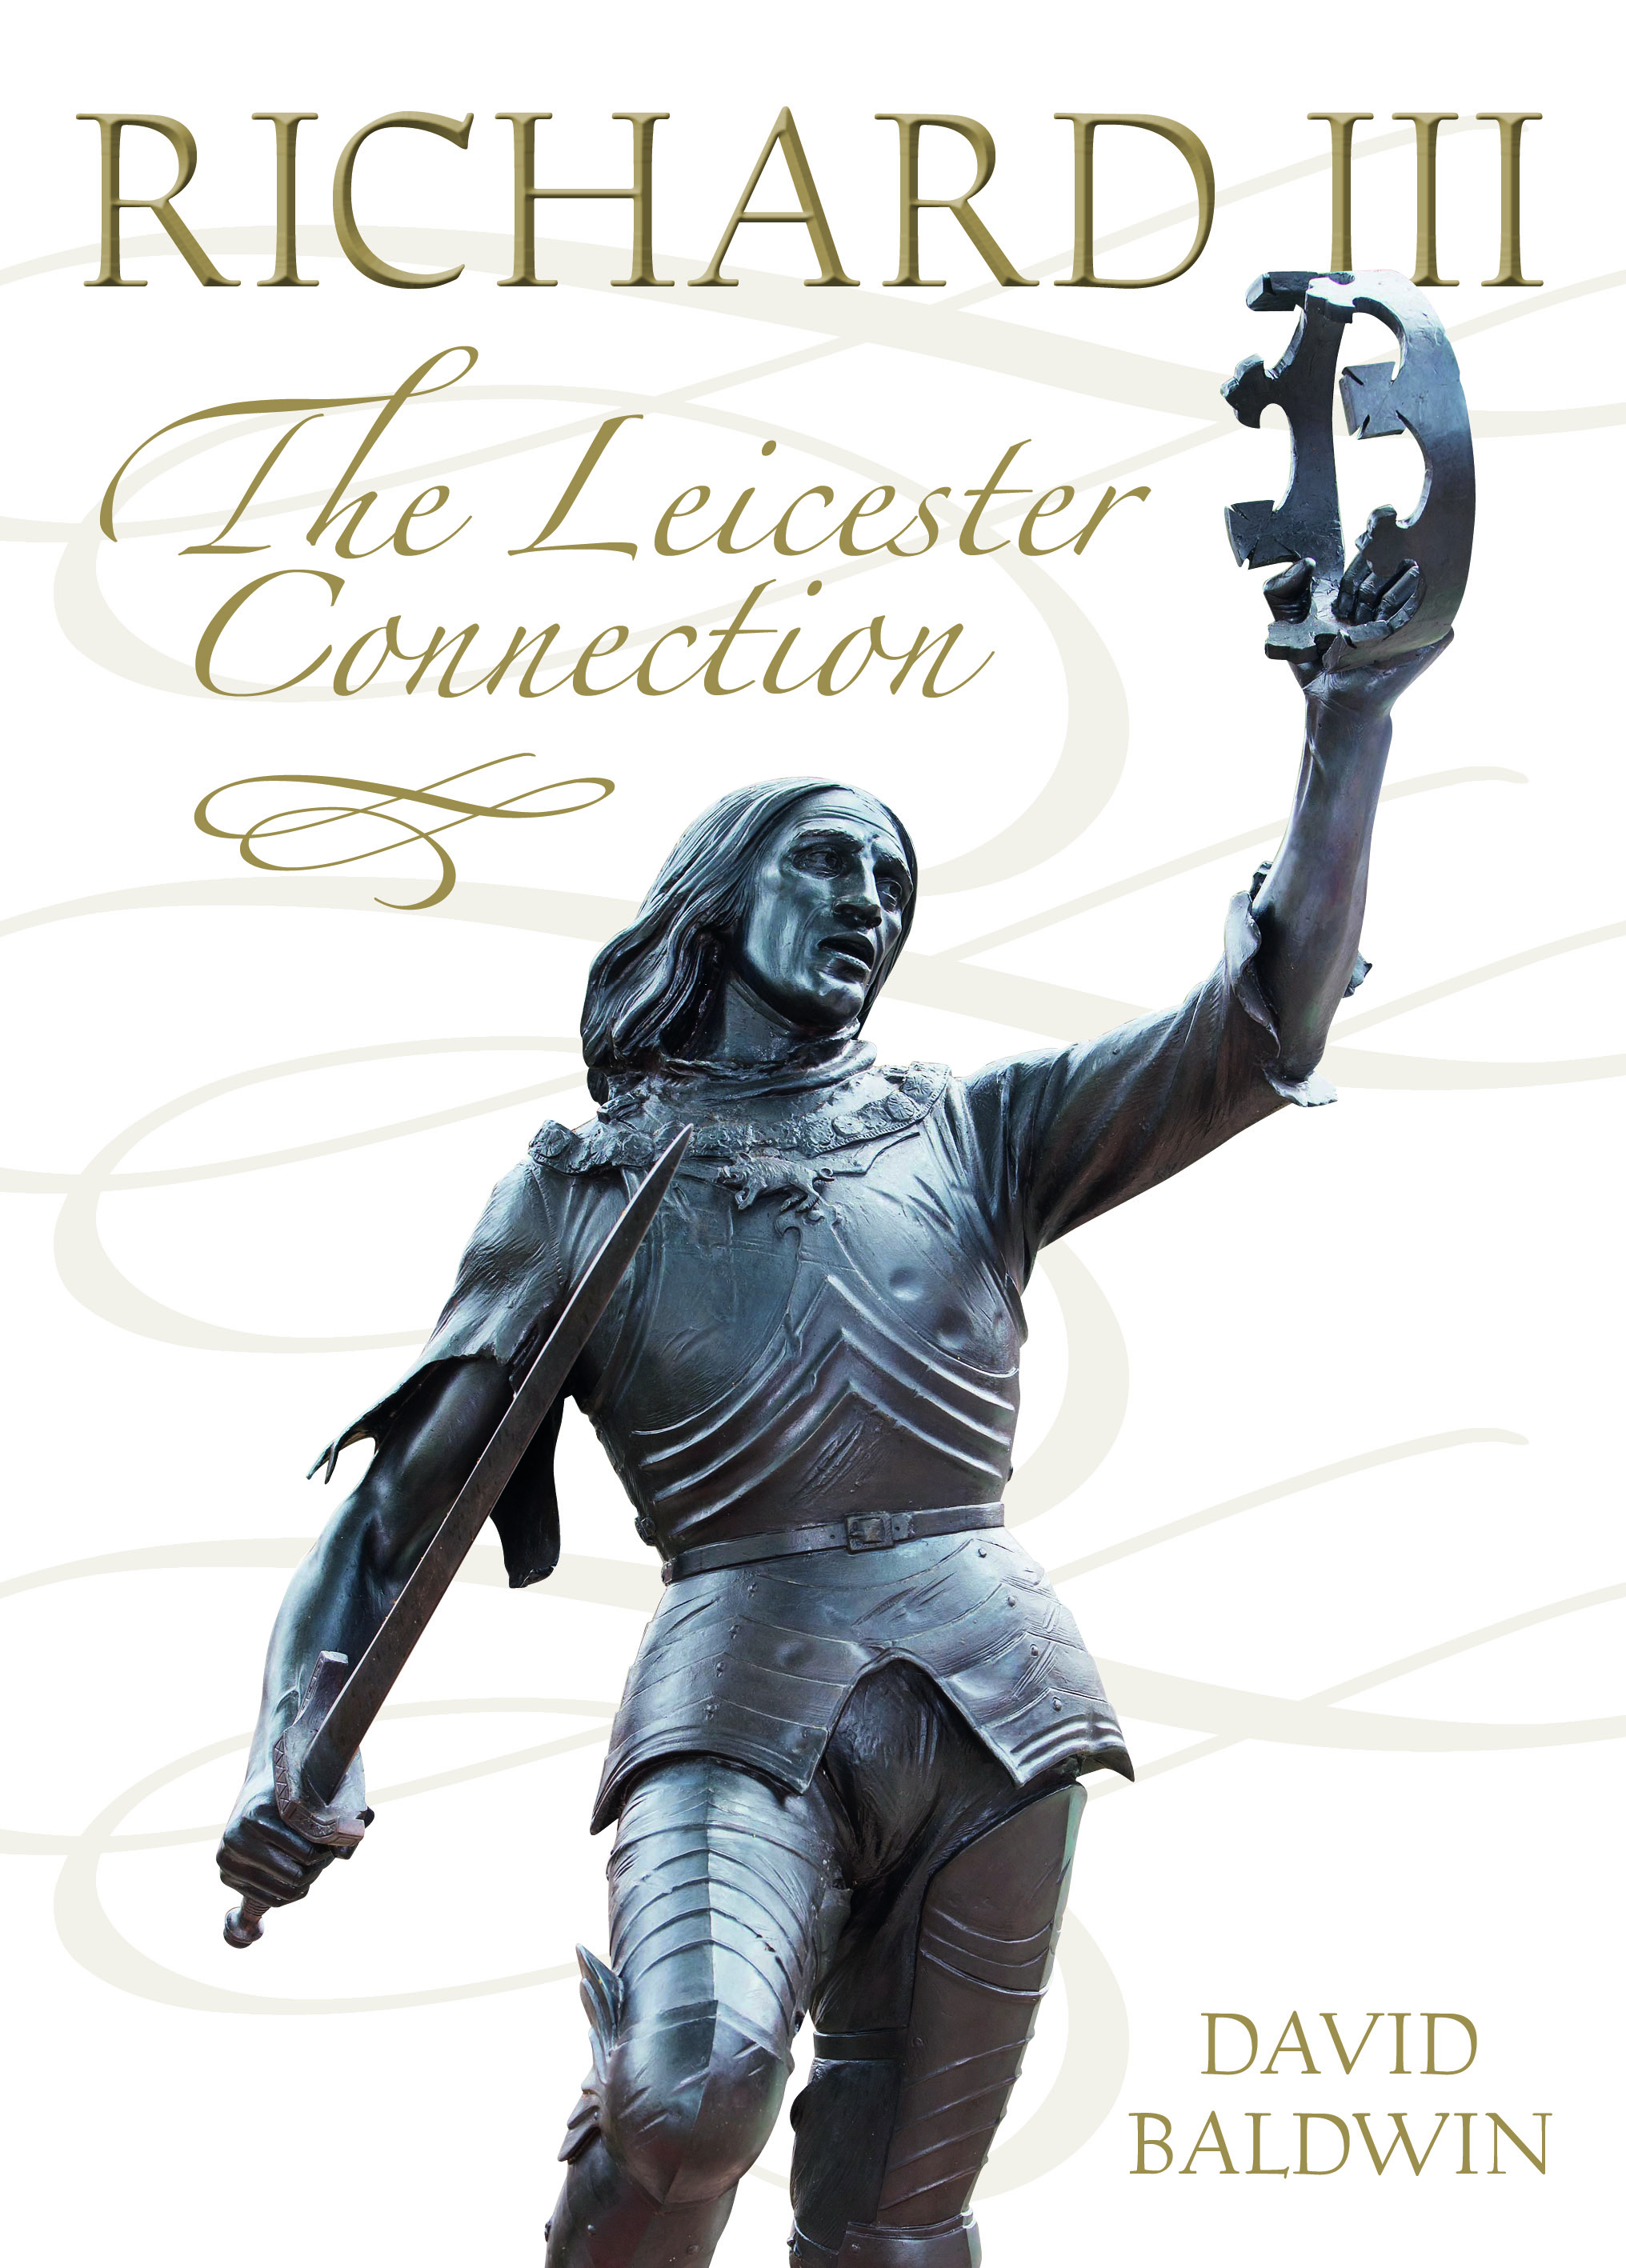 Richard III – The Leicester Connection